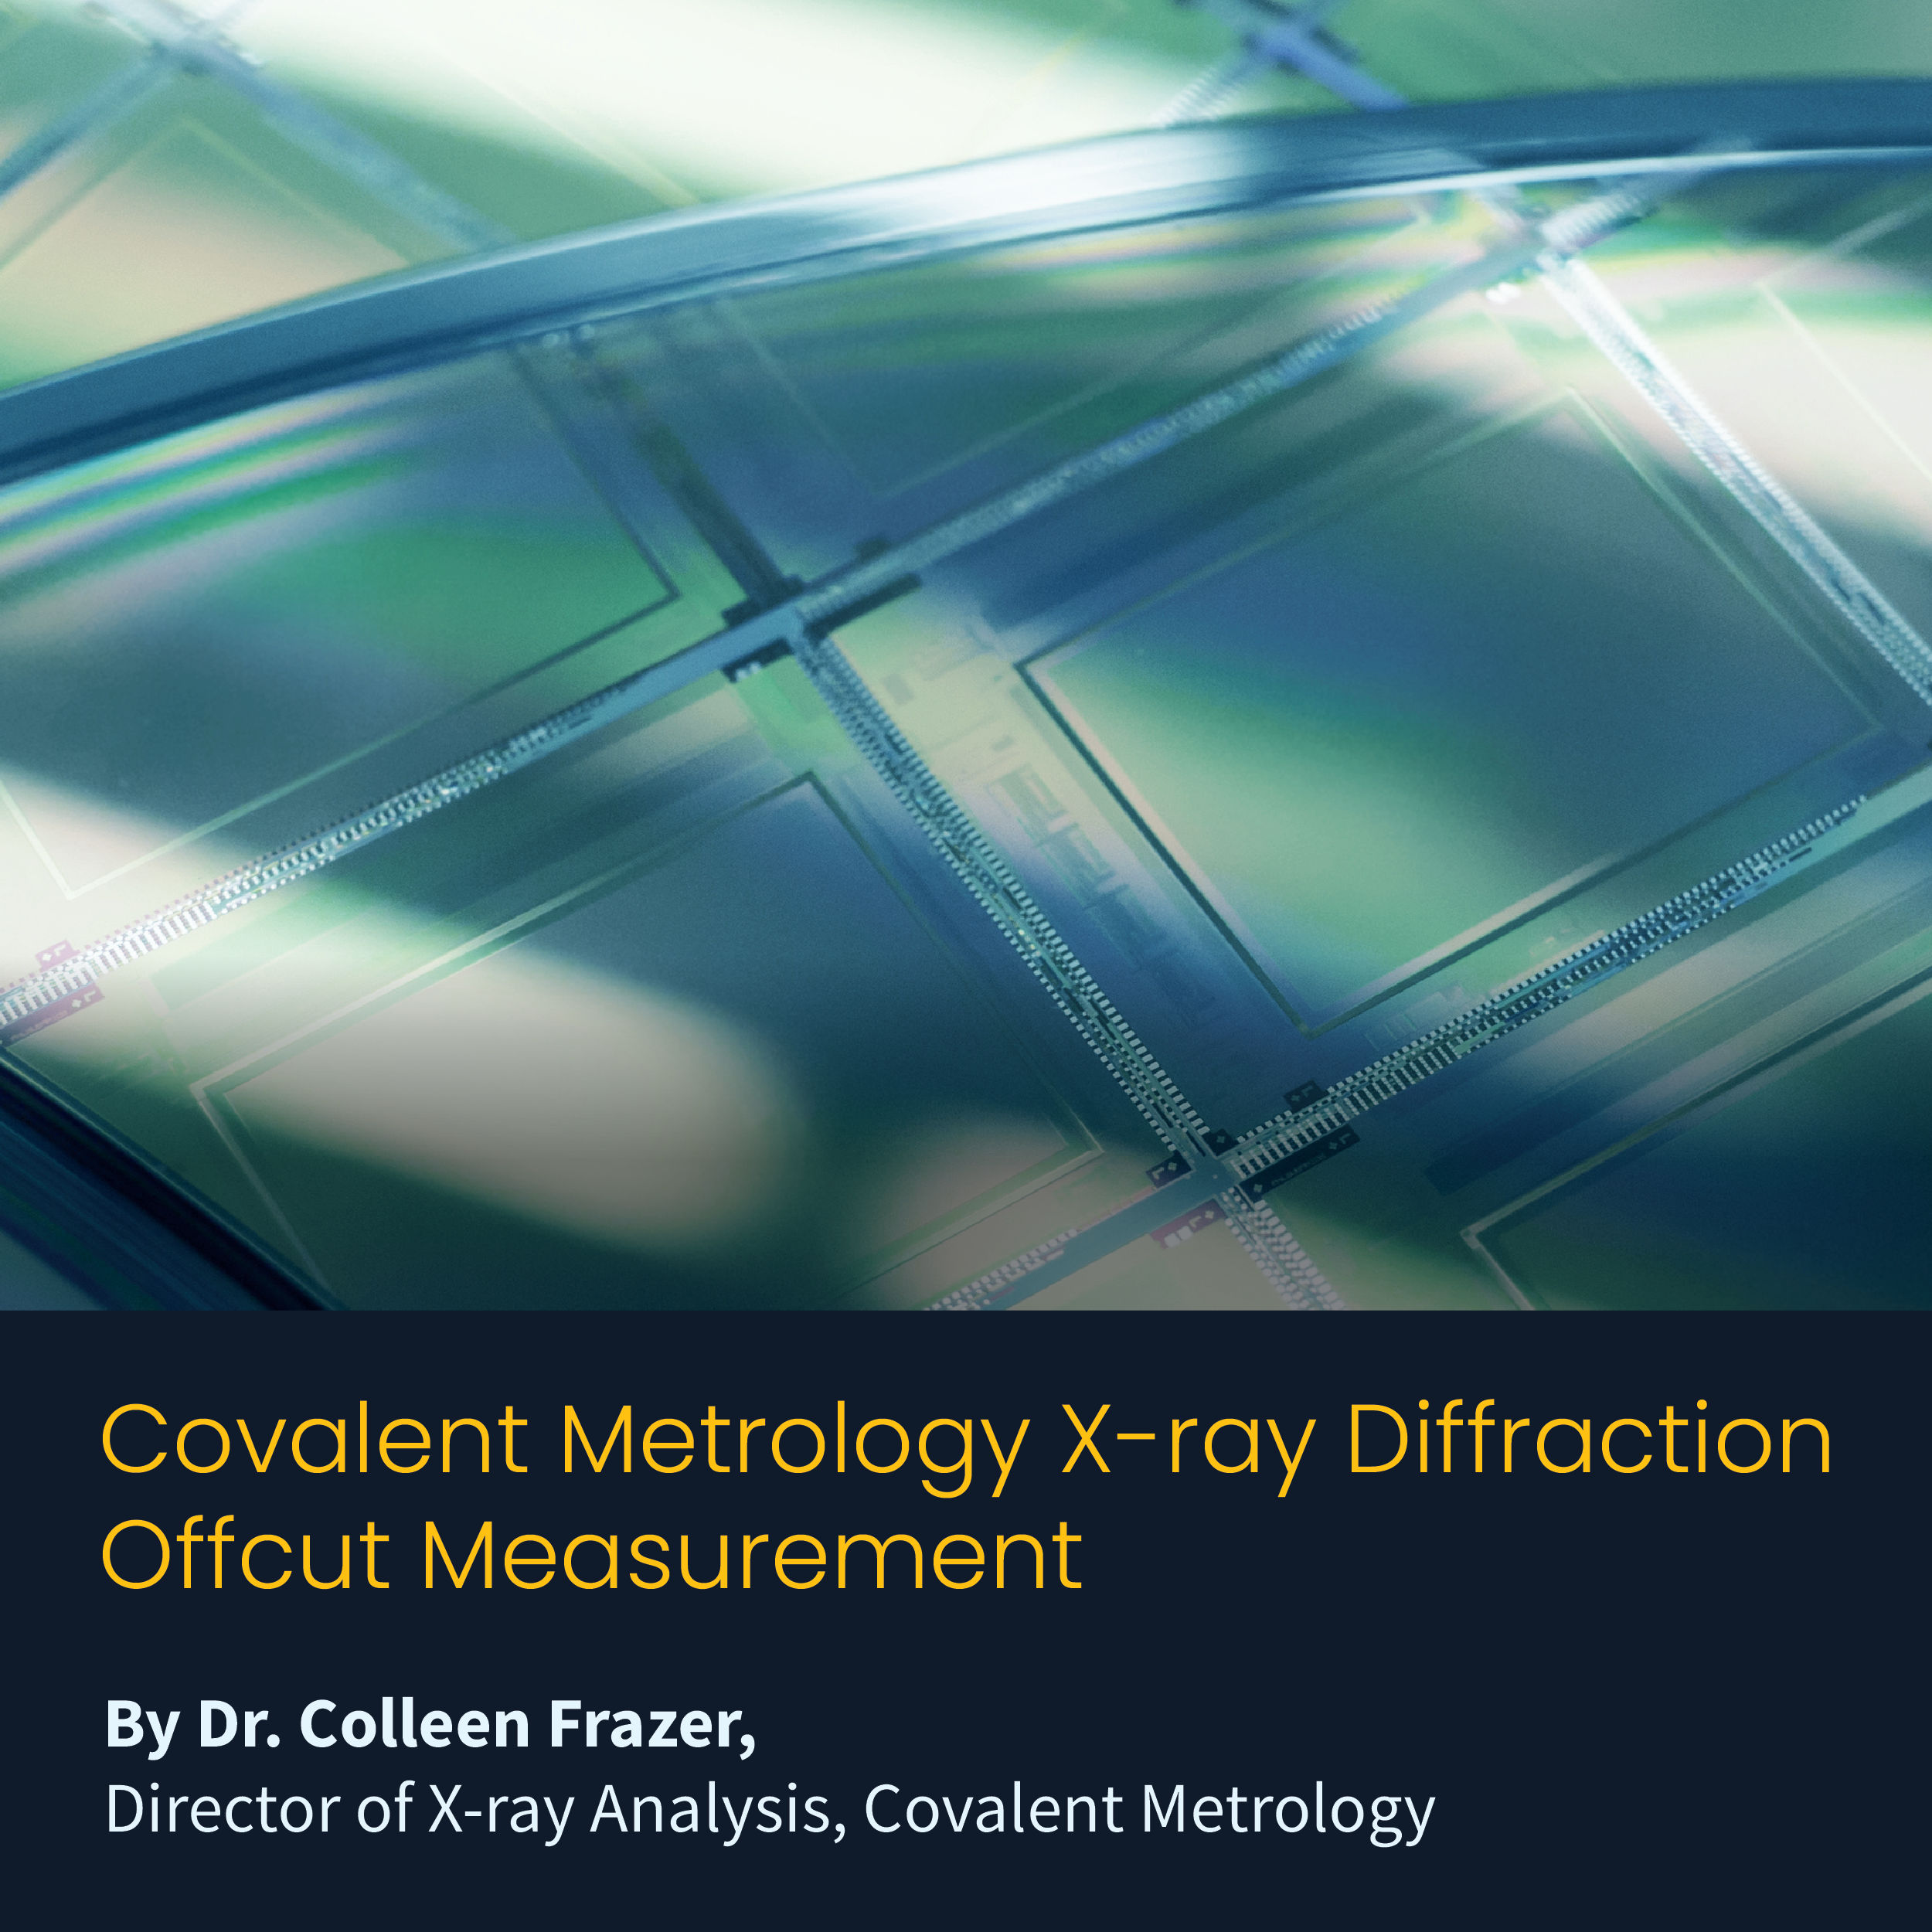 Application Note: Covalent Metrology X-ray Diffraction Offcut Measurement